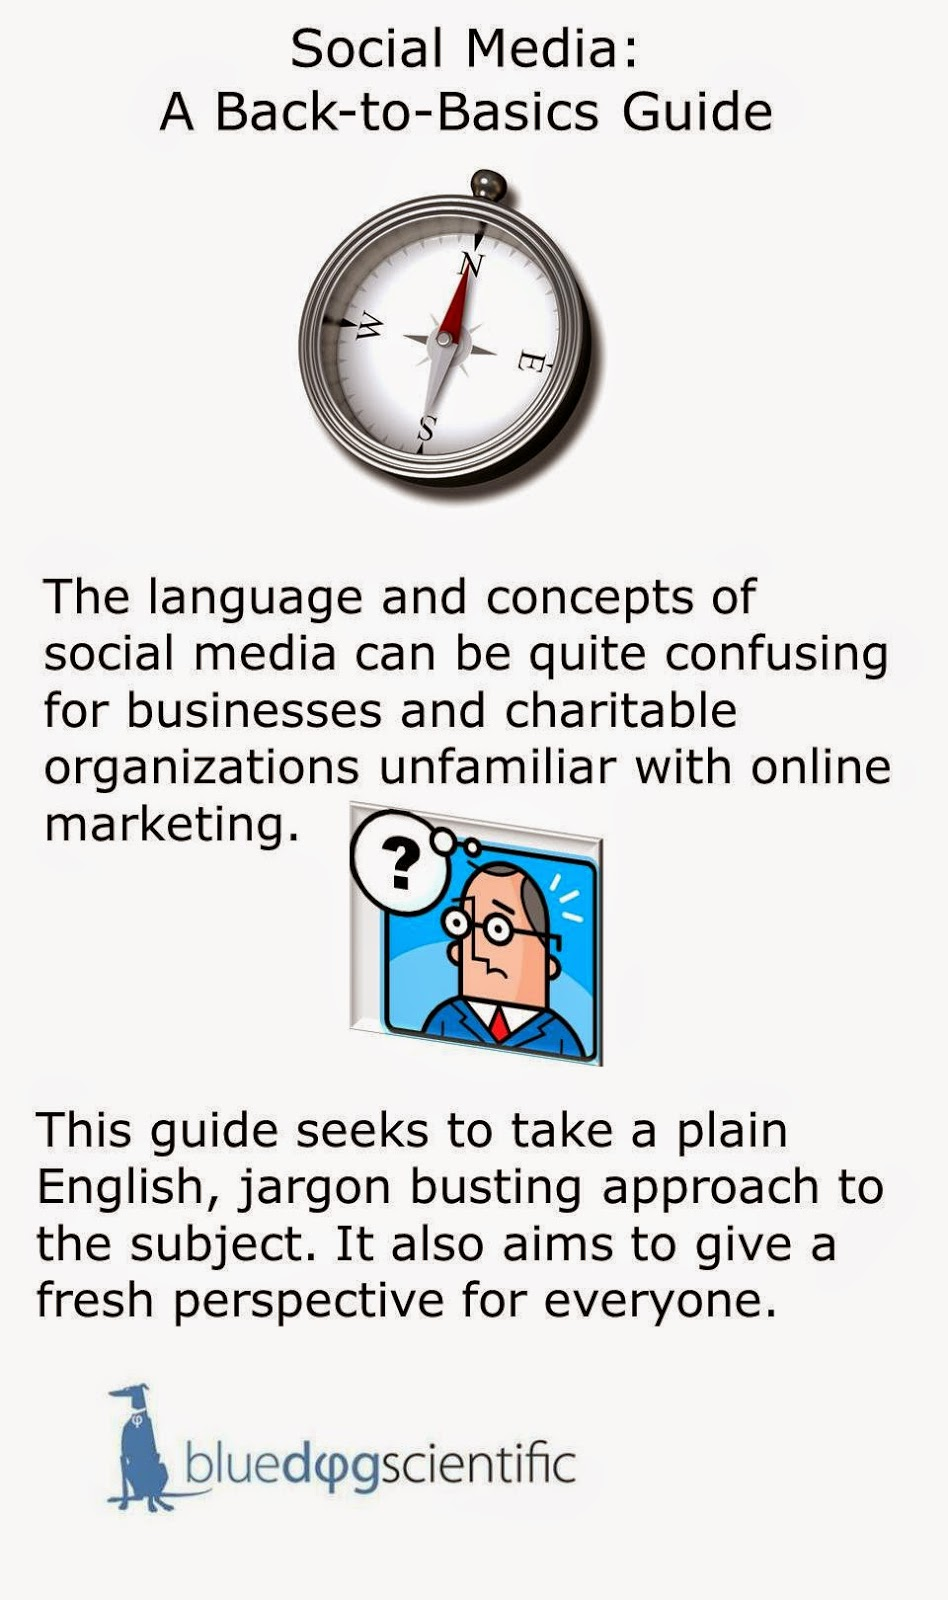 Back-to-basics guide to social media.